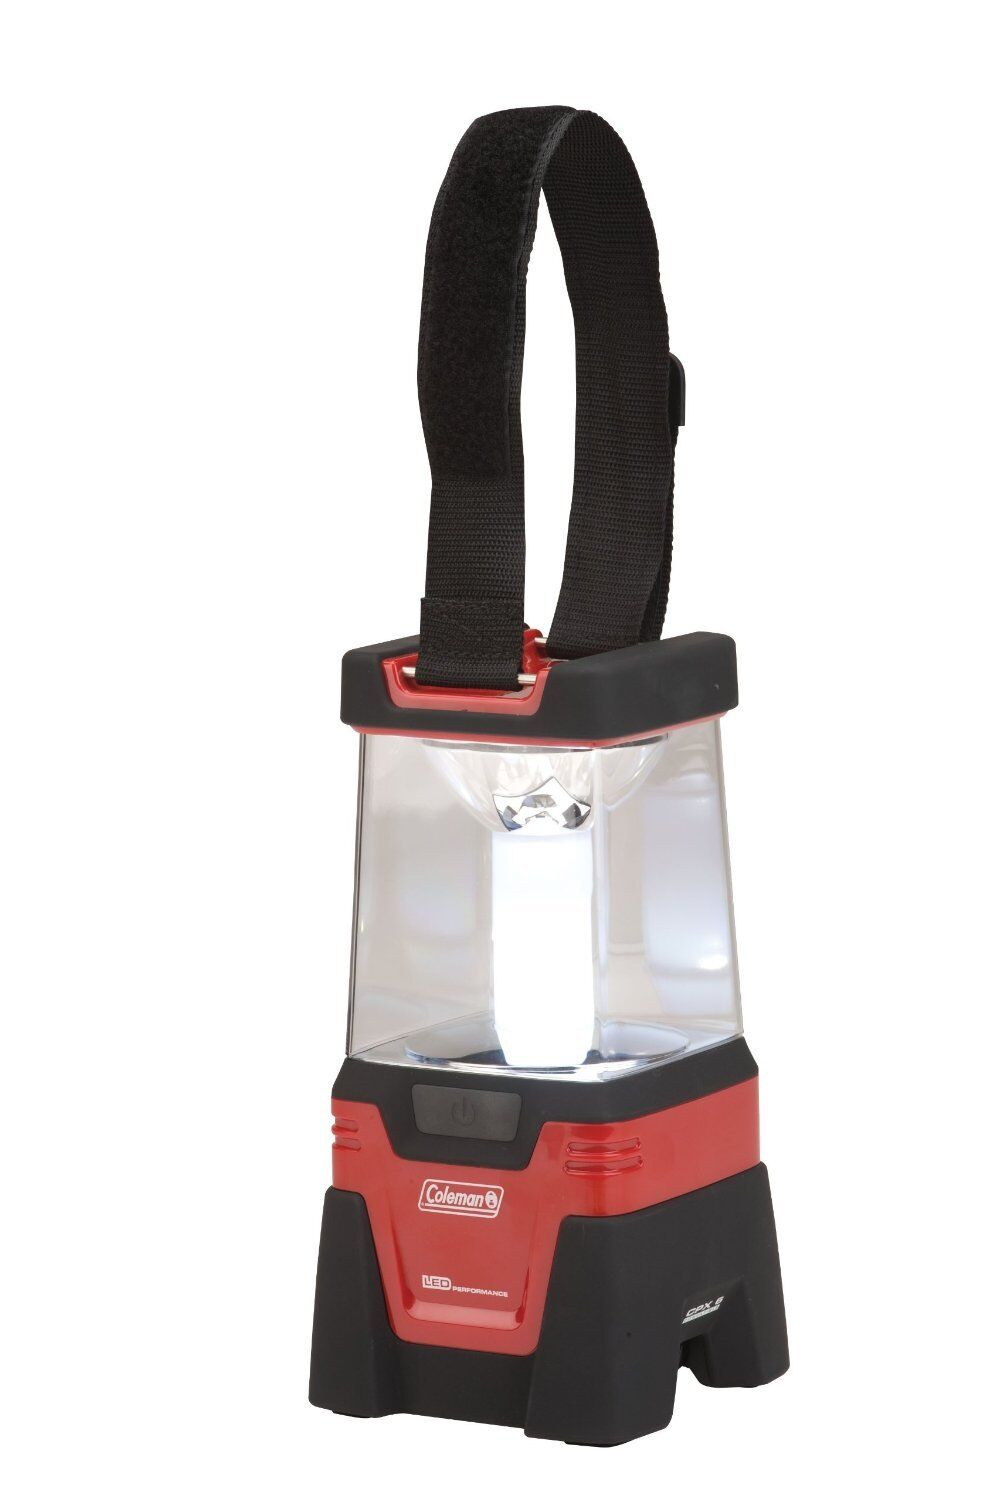 Rechargeable LED Lantern Lighting Light Nightlight Emergency  Travel Outdoor NEW  choices with low price